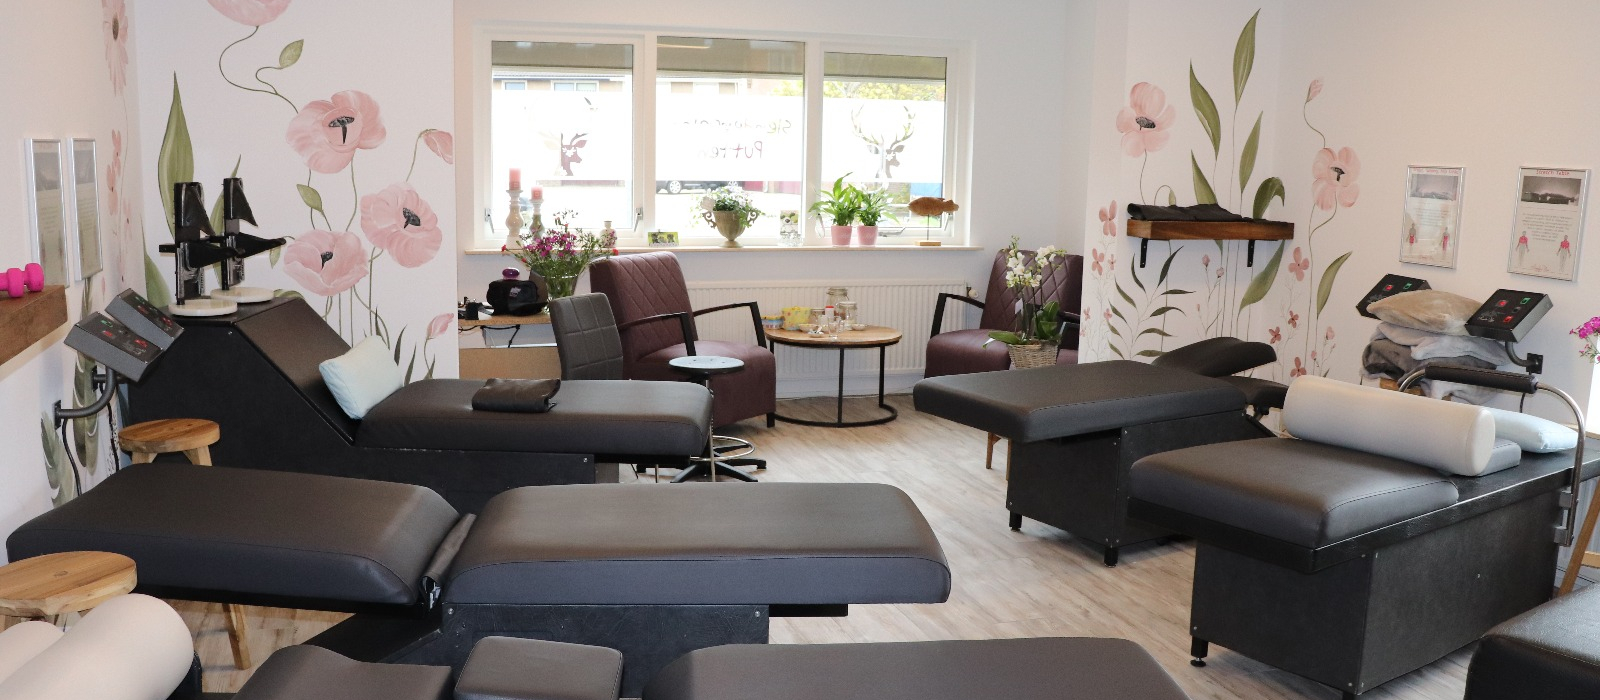 Slender-salon-Putten-Connie-Goris